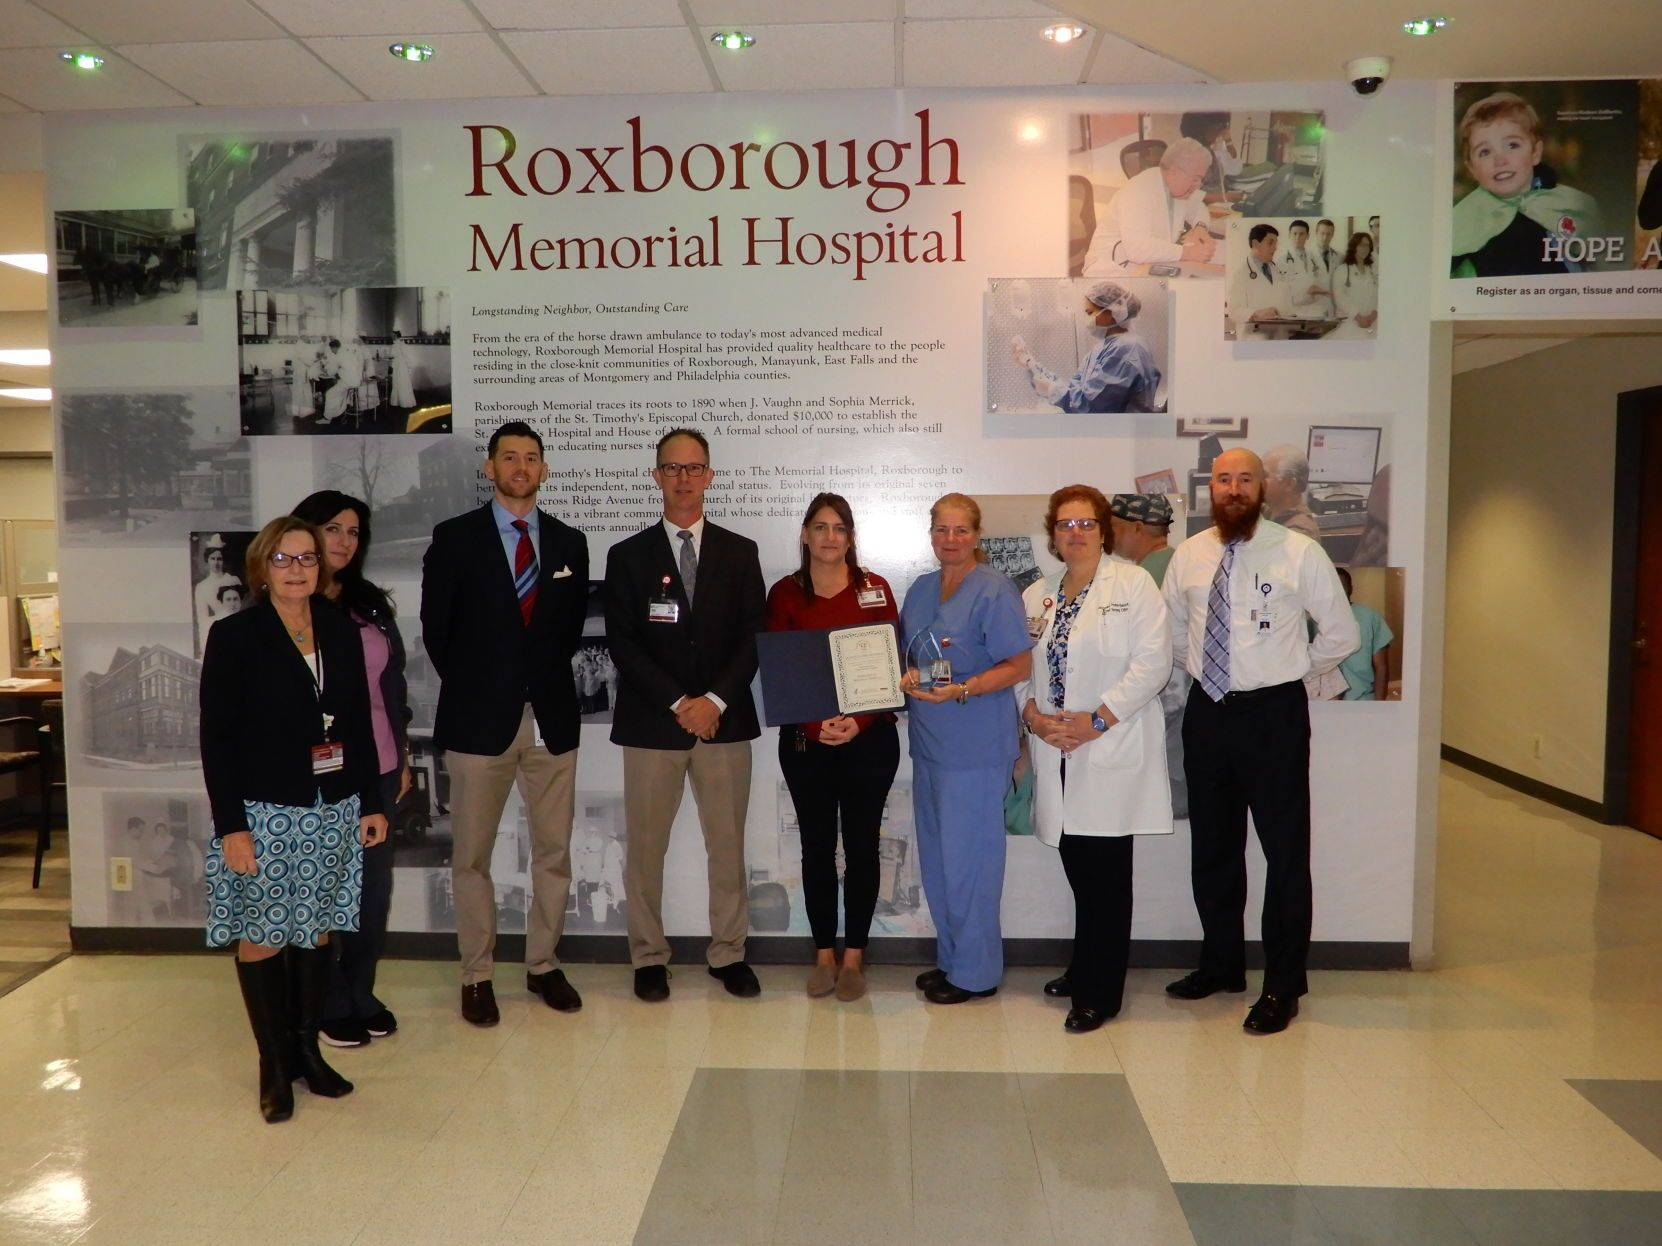 Roxborough Memorial Hospital honored for events